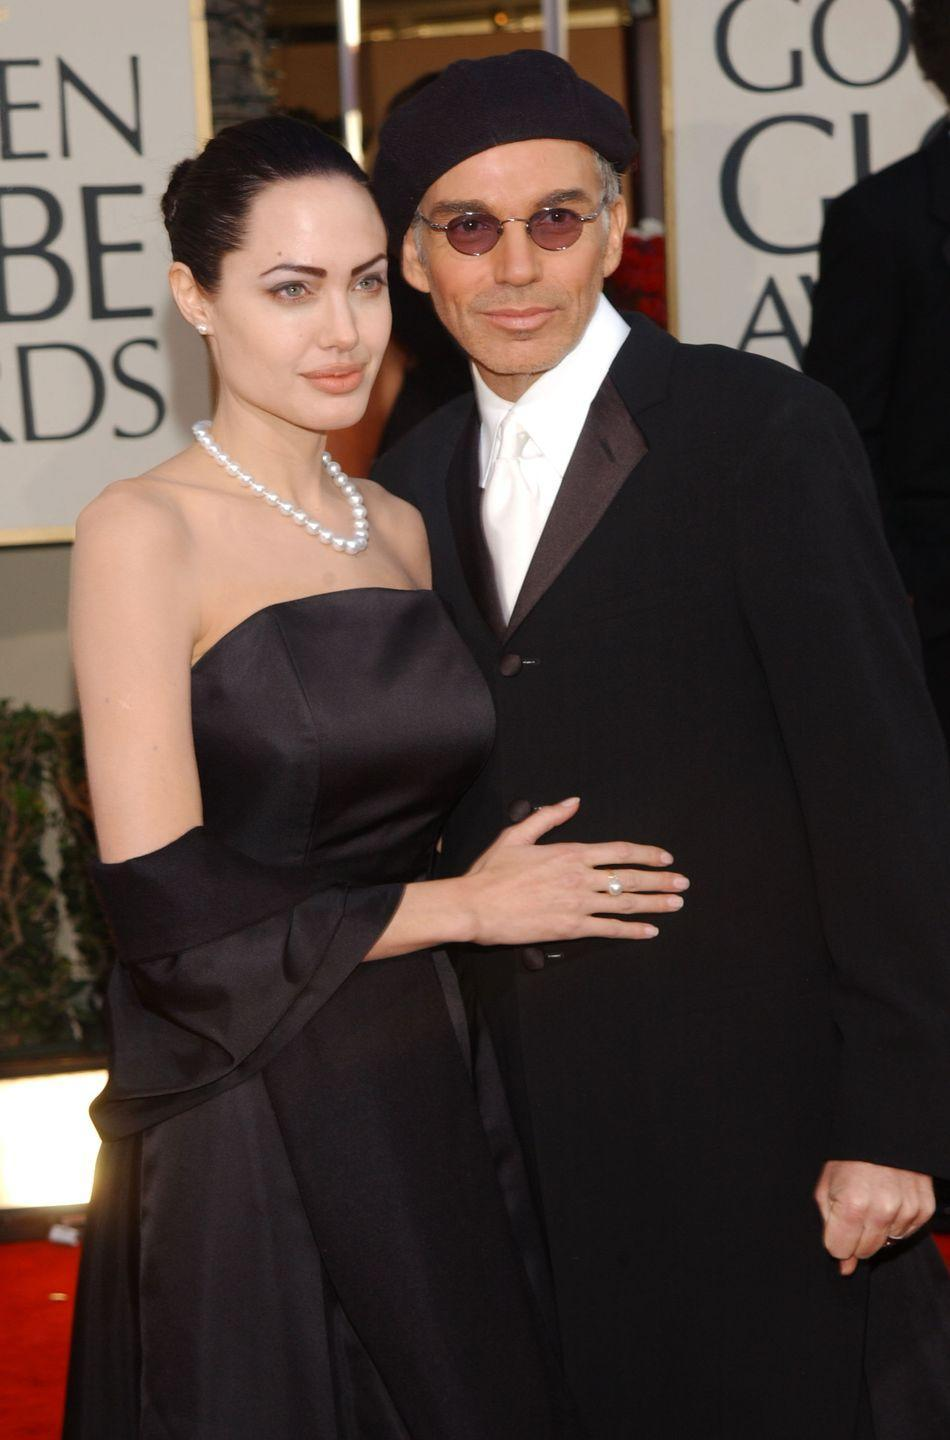 """<p>Years before Brangelina, Angelina was married to Billy Bob from 2000 to 2002. They may have banged in their limo before awards shows and worn necklaces containing each other's blood, but <a href=""""https://people.com/movies/billy-bob-thornton-marriage-angelina-jolie-blood-necklaces/"""" rel=""""nofollow noopener"""" target=""""_blank"""" data-ylk=""""slk:Billy Bob says"""" class=""""link rapid-noclick-resp"""">Billy Bob says</a> the marriage """"wasn't as crazy as people wrote about.""""</p>"""